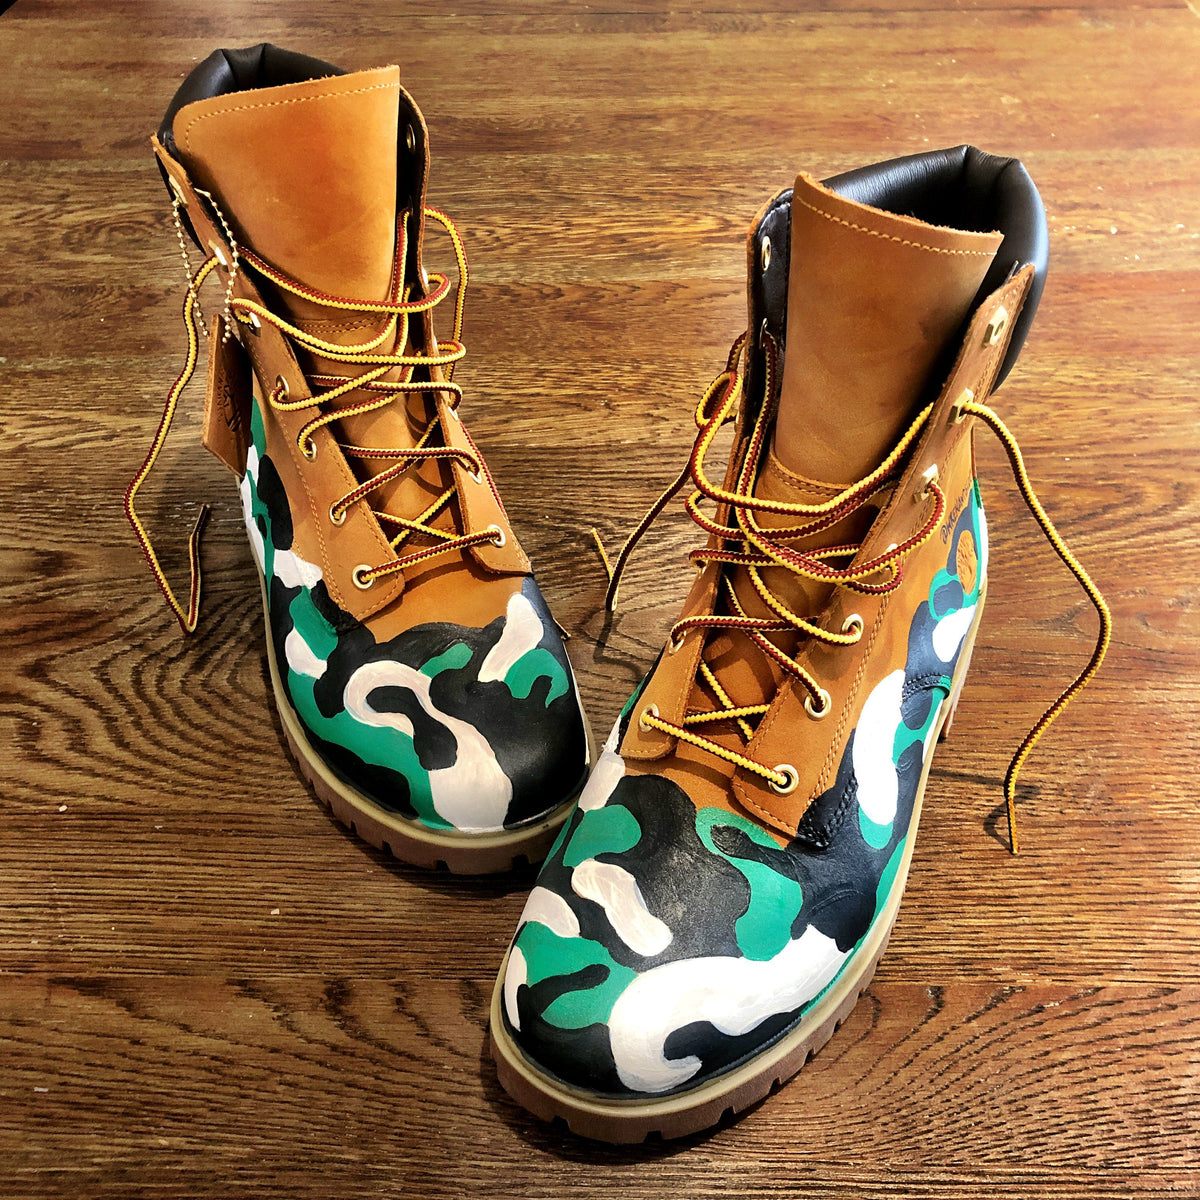 Green, white and black camo style painted boots. Painted on waterproof Timberland Boots. Signed @wrenandglory.